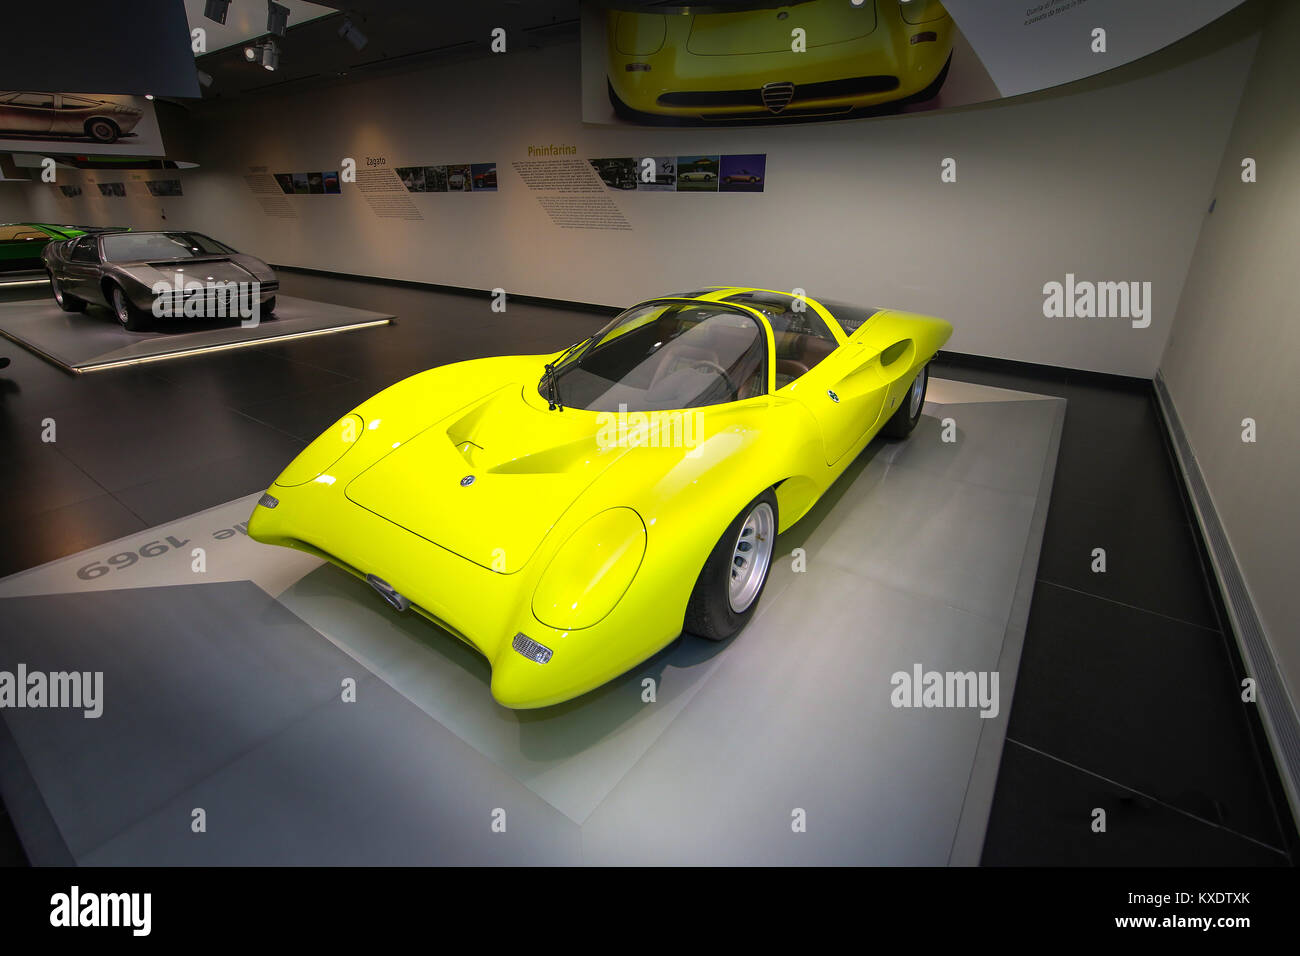 A Superb Alfa Romeo 33 2 Coupe Speciale Model On Display At The Stock Photo Alamy